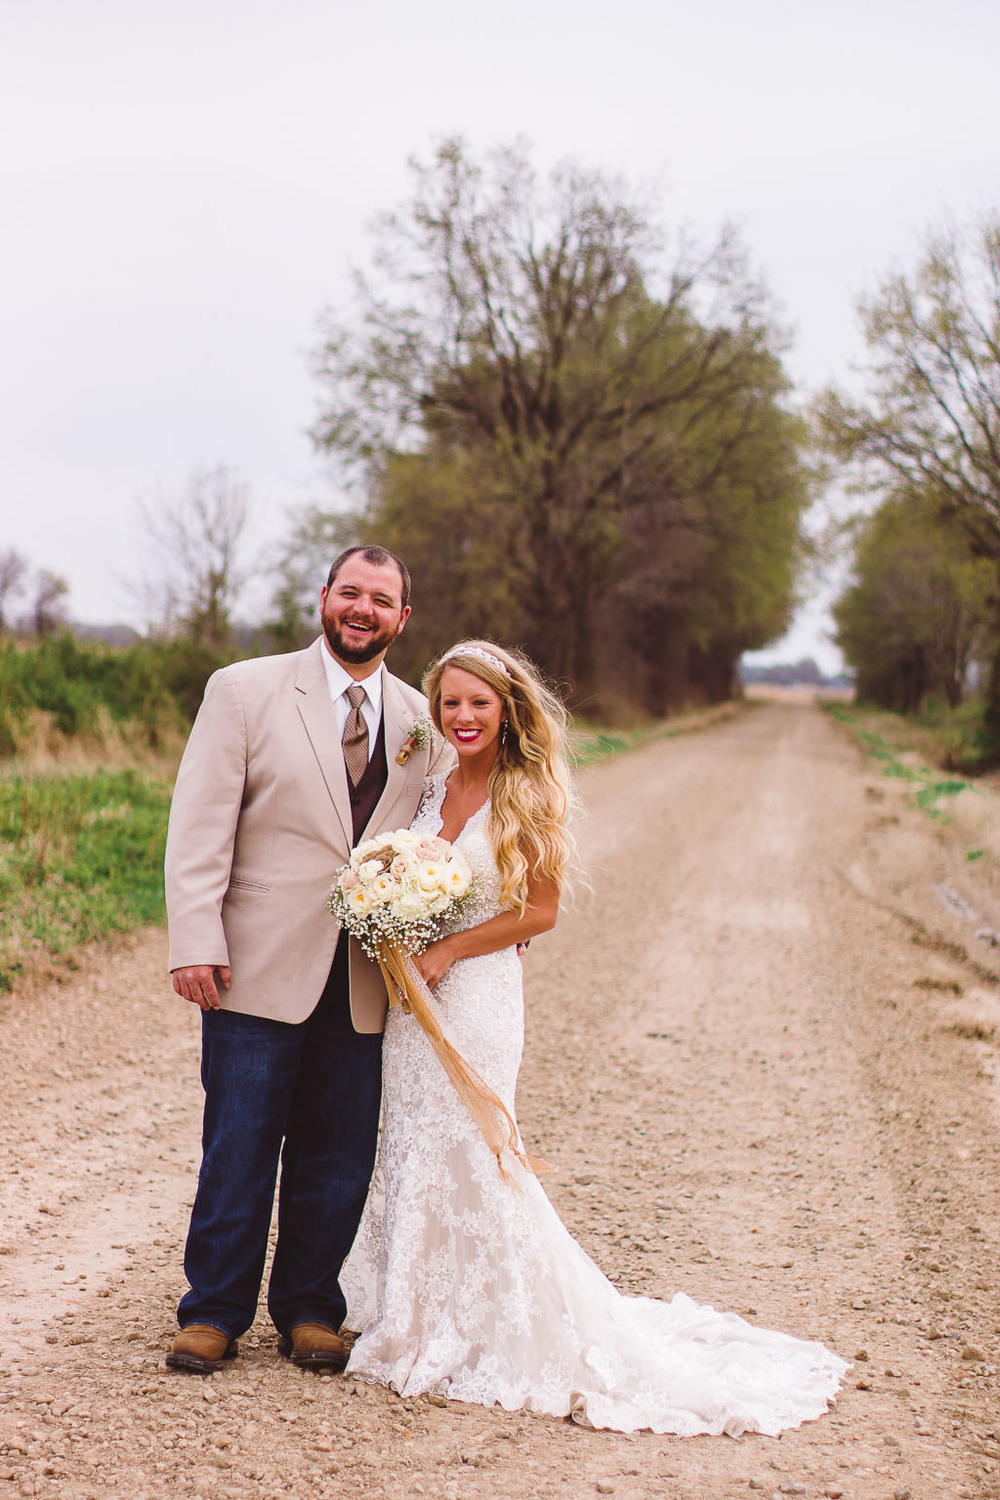 country dirt road wedding barn lace rustic wedding fayetteville ar wedding photographer